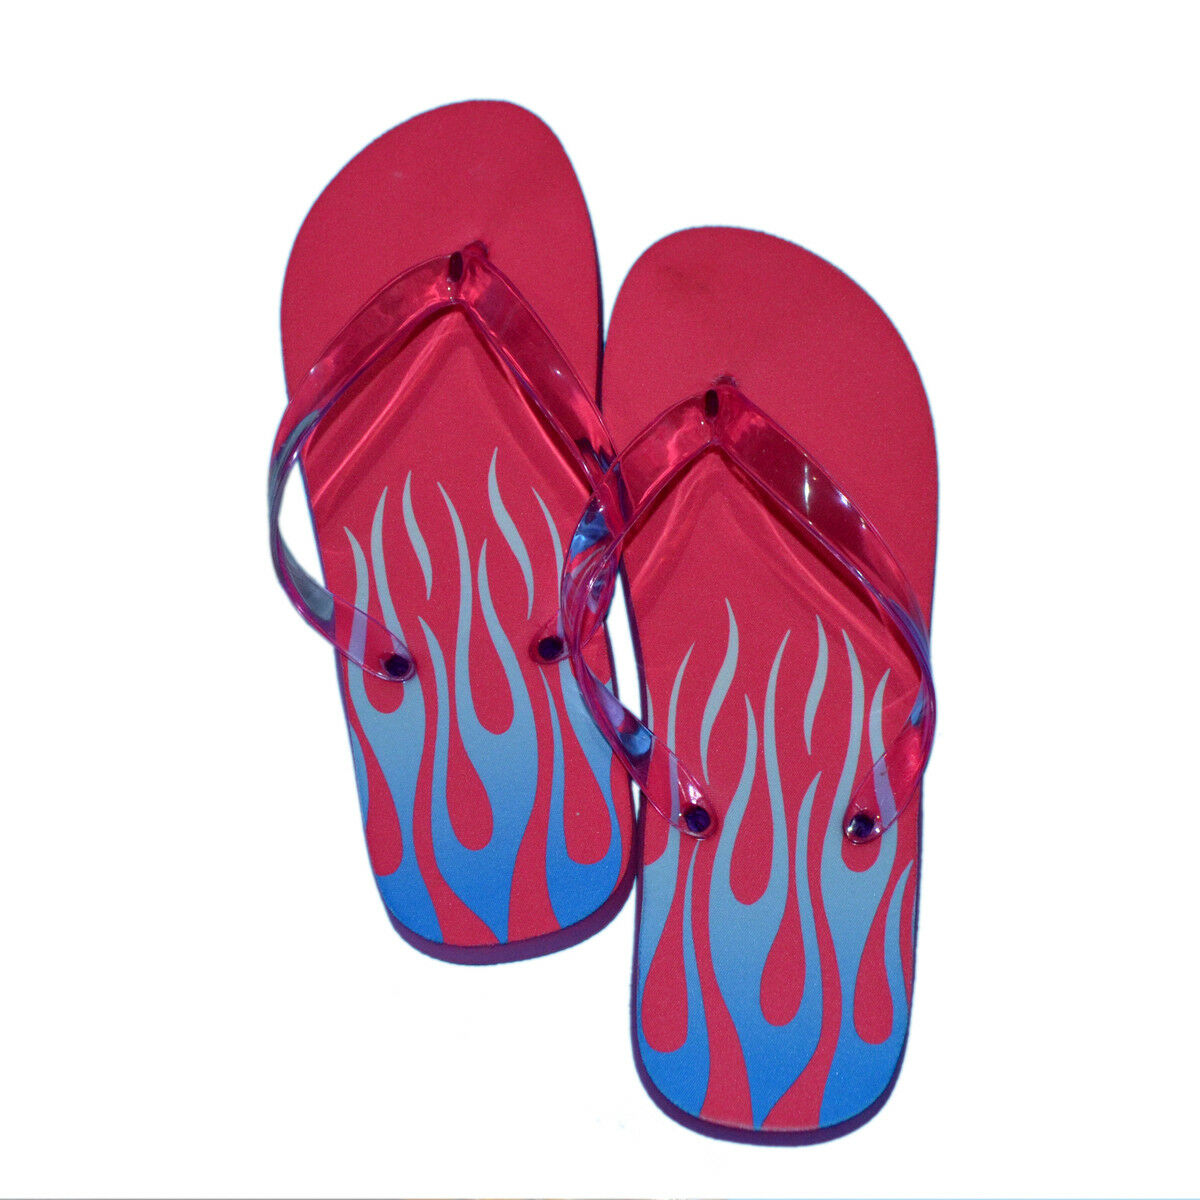 LADIES Flame MEDIUM Pink & Blue Flame LADIES Design Flip Flops SANDALS BEACH SHOES PRESENT da20b4